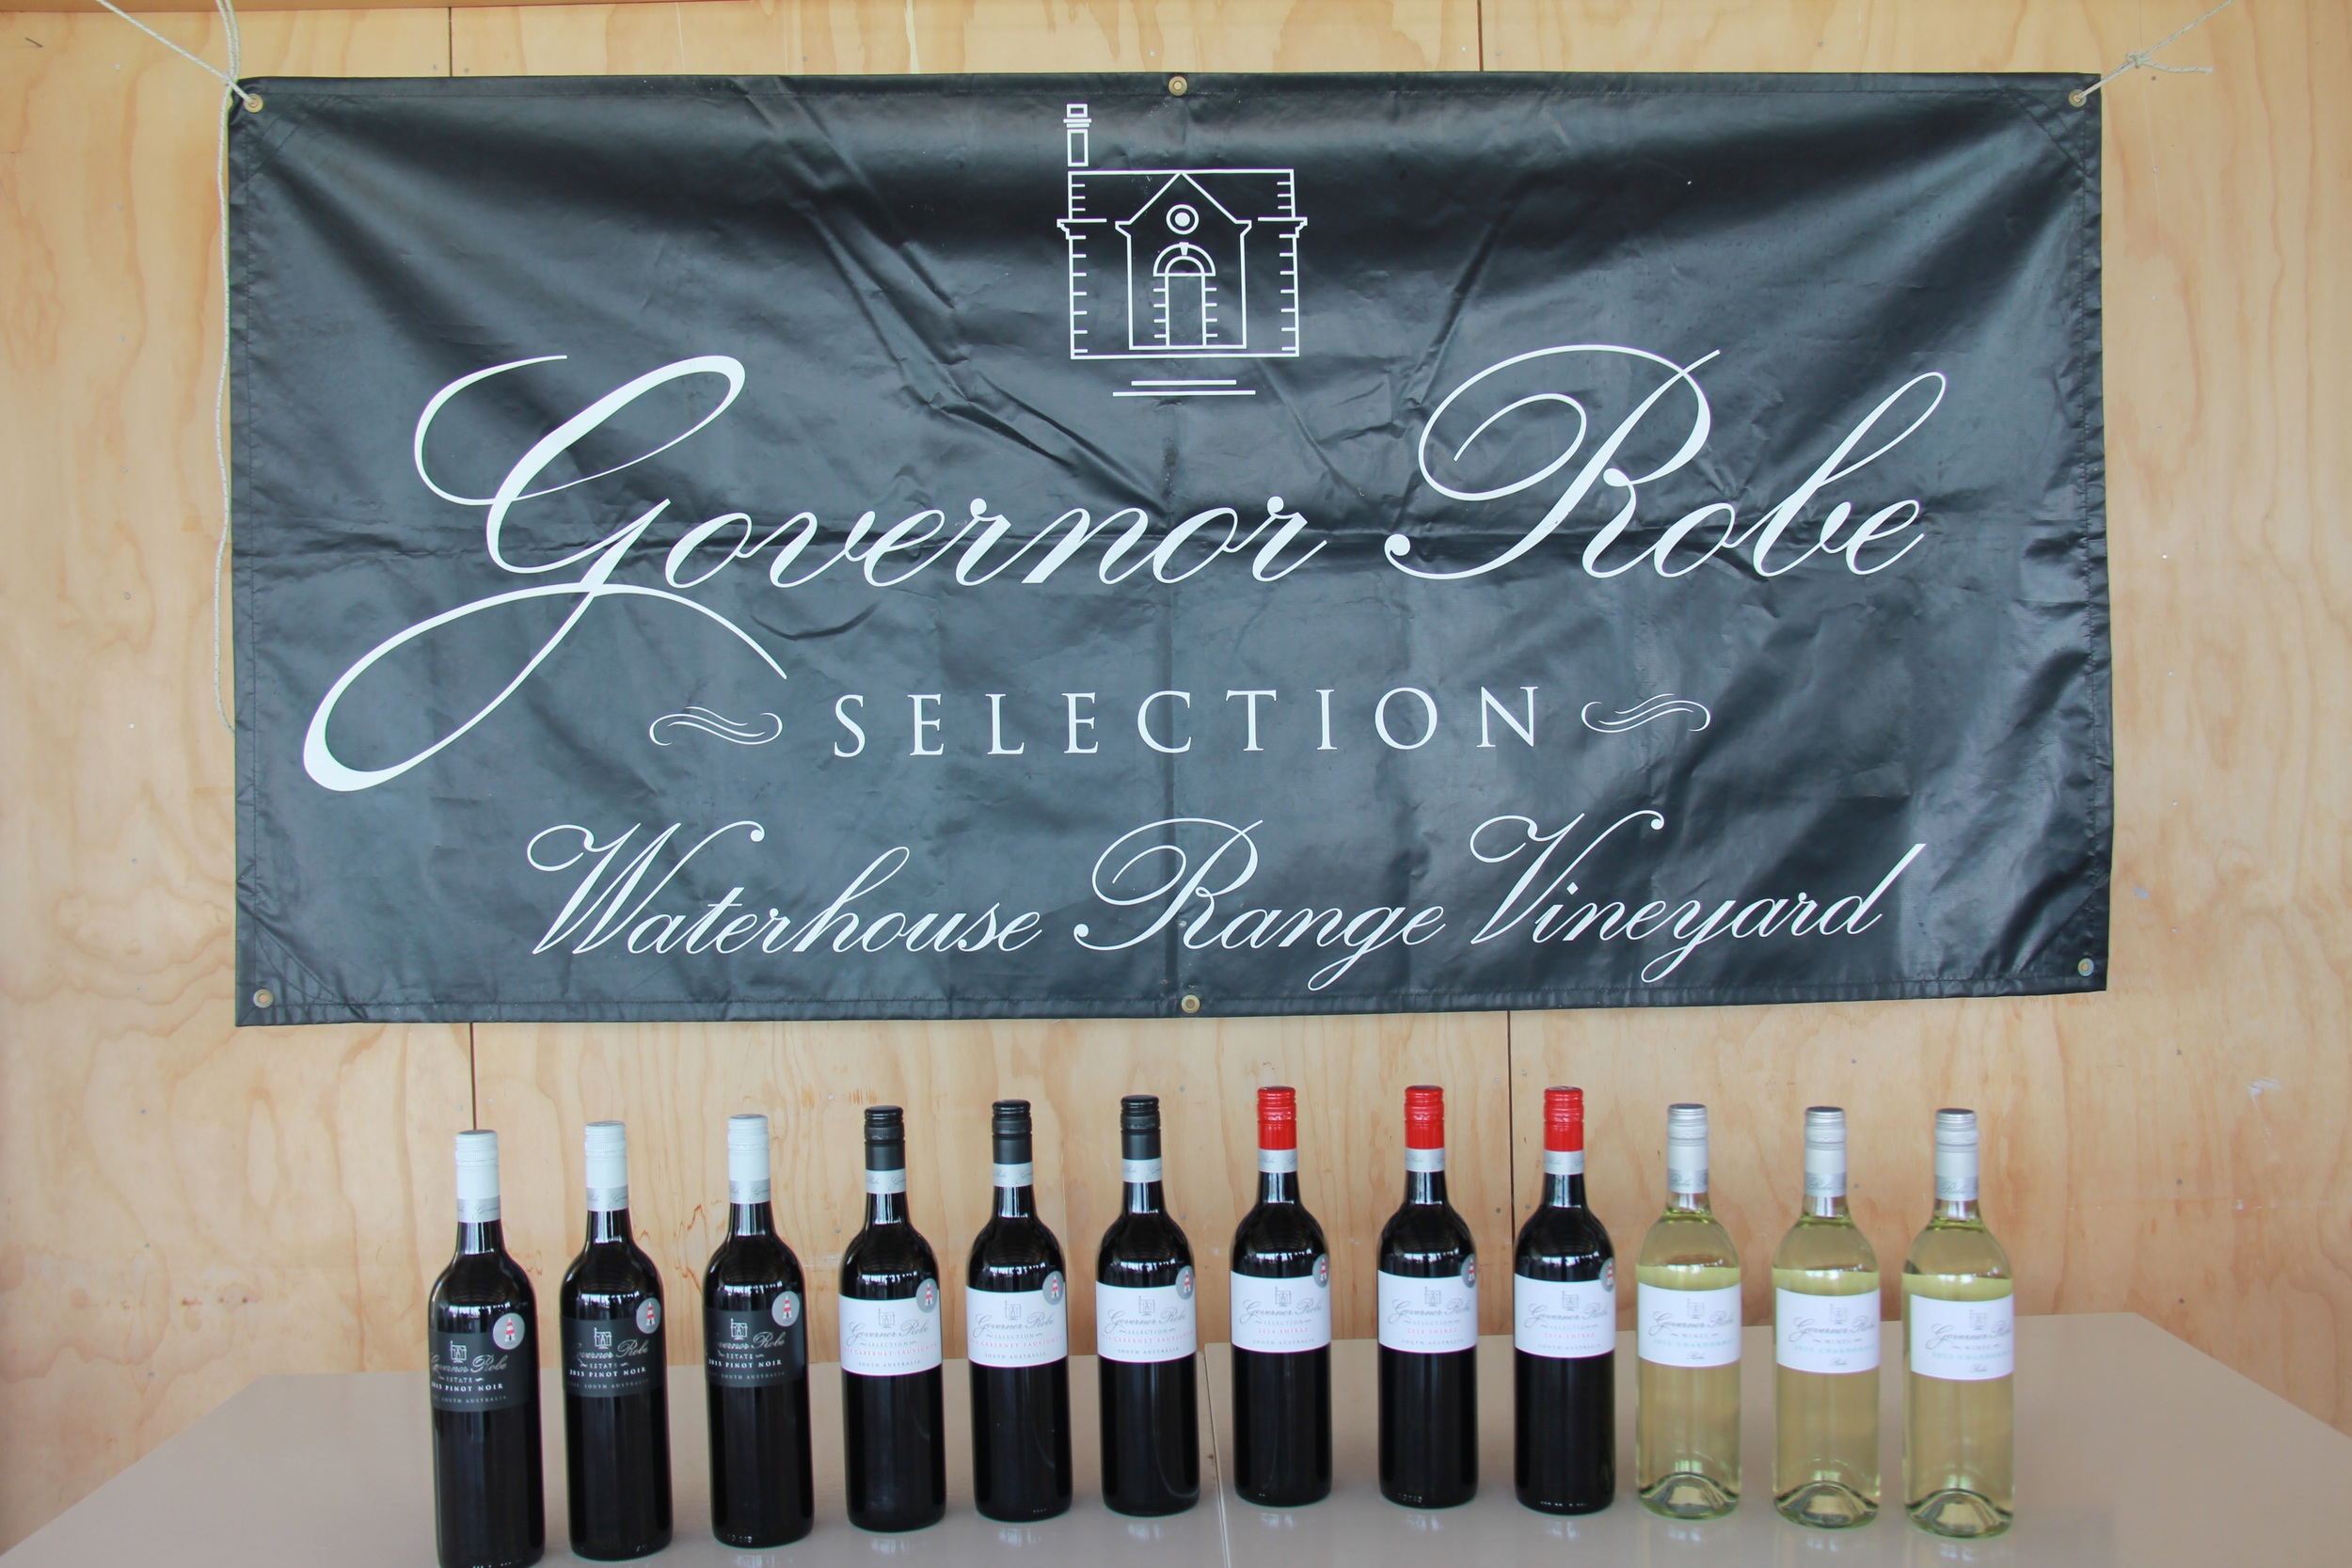 Governor Robe Wines